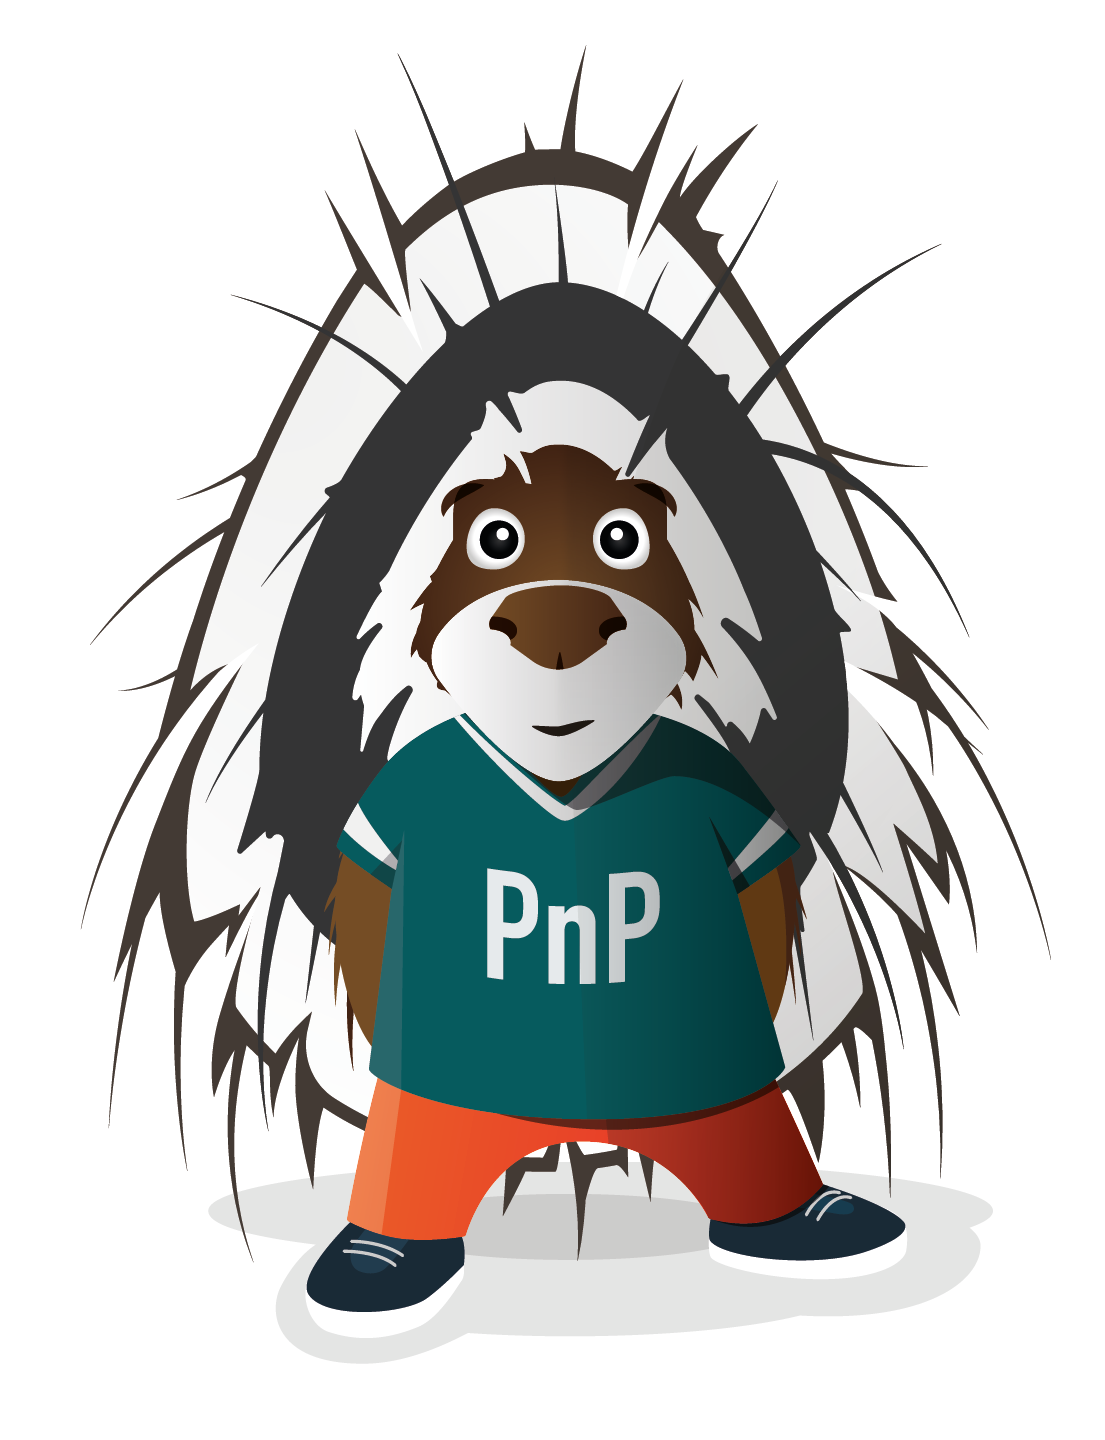 Parker the Porcupine, the Official Mascot of the PnP